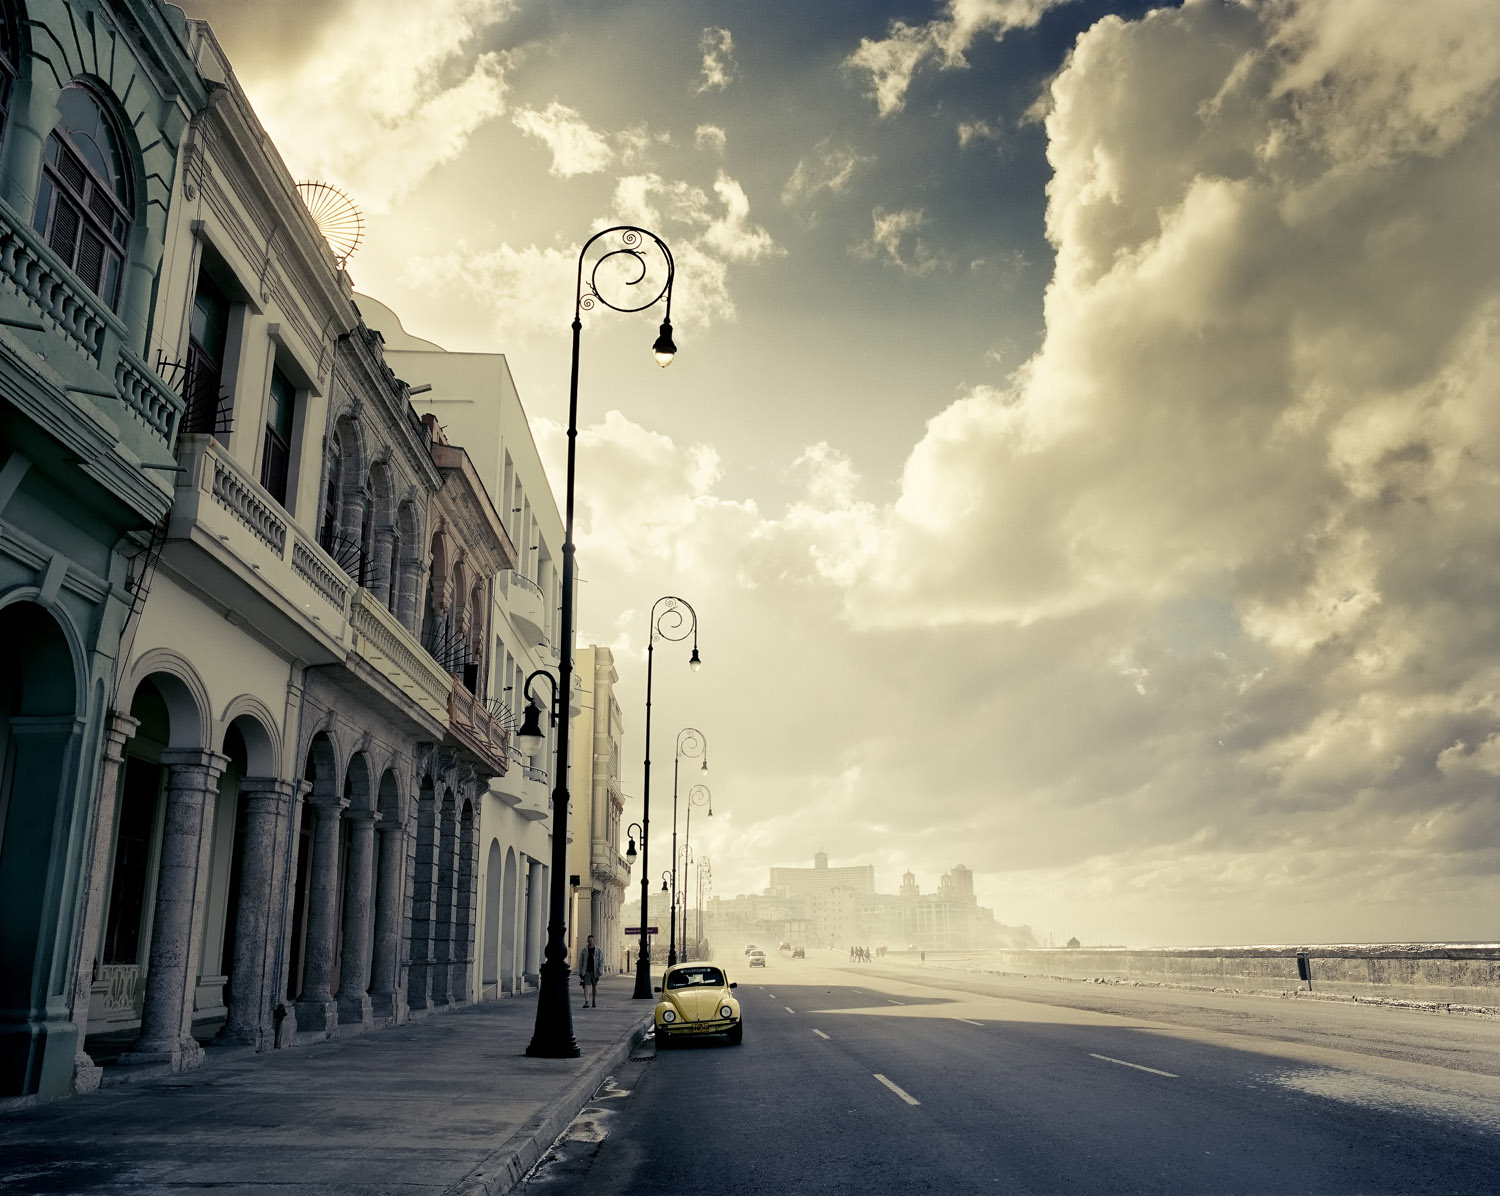 Havana's most famous street, the Malecón, as a cold front rolls in.